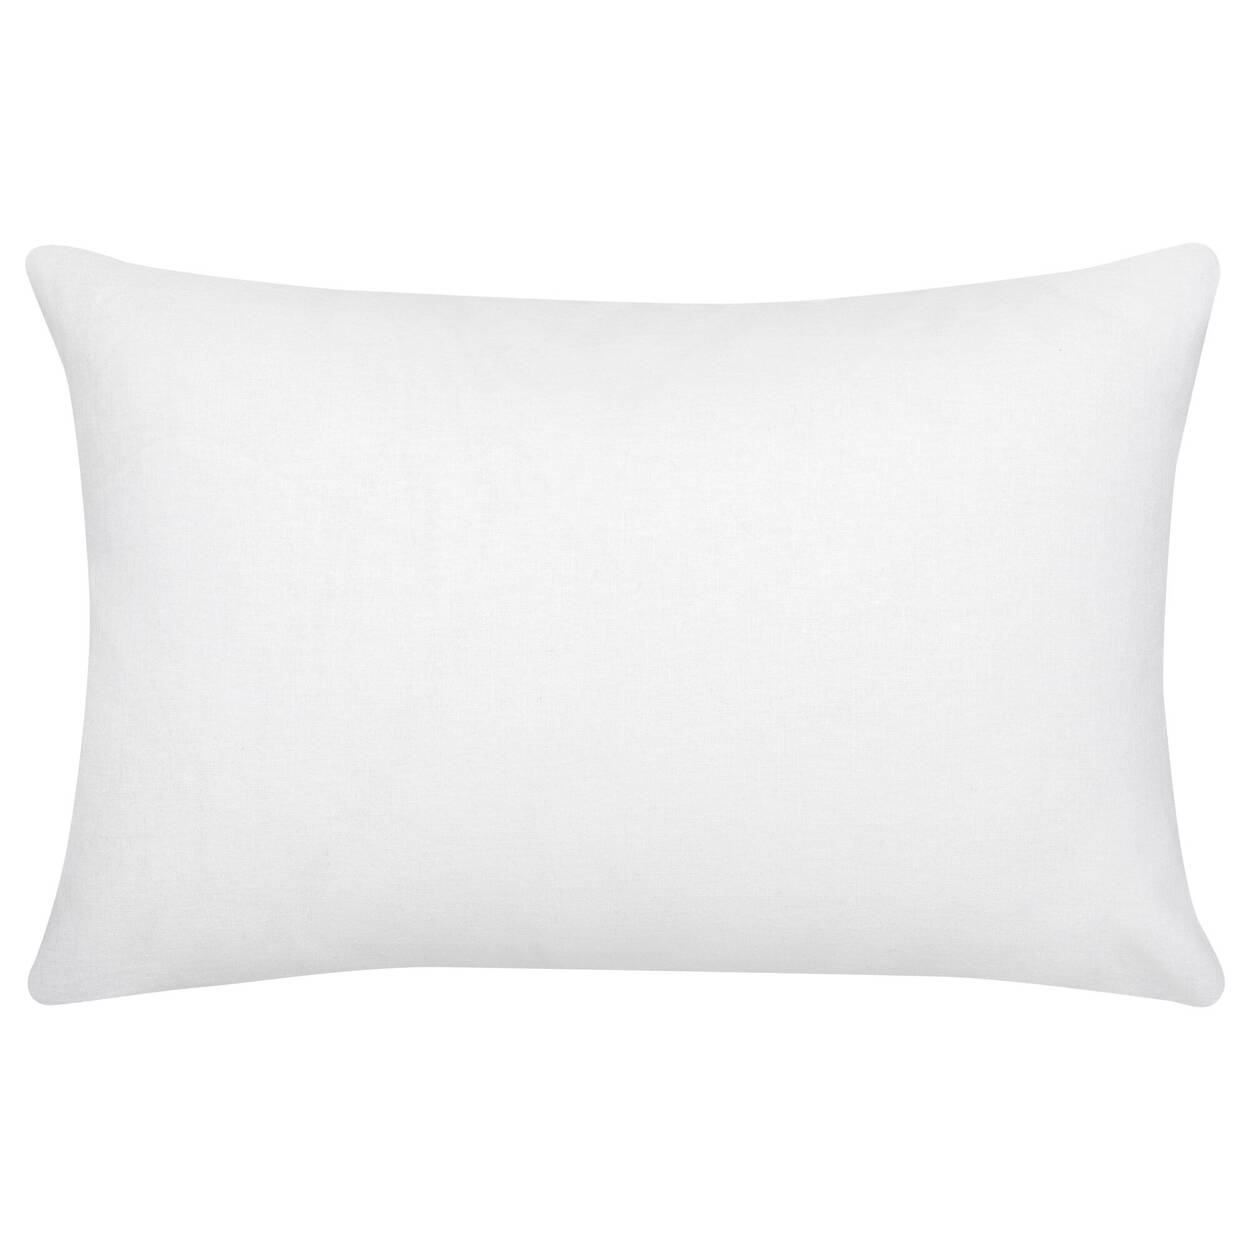 "Penni Lumbar Decorative Pillow 13"" X 20"""